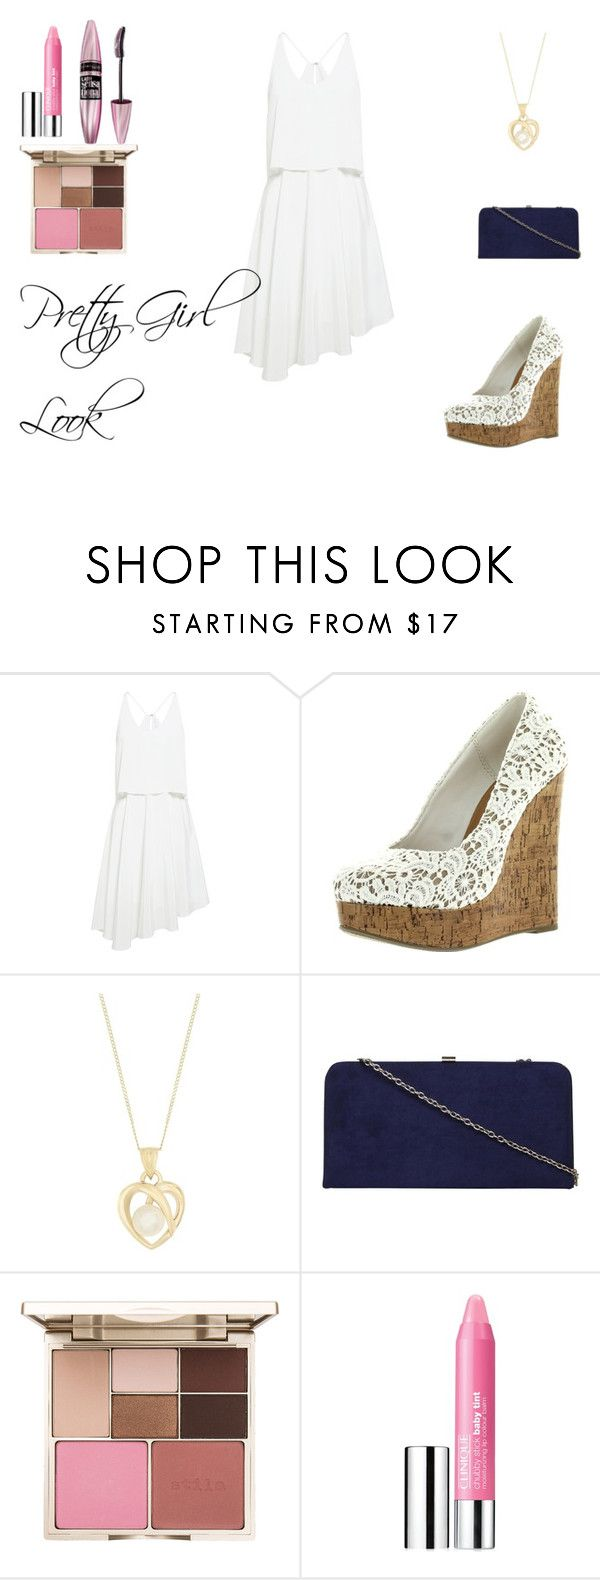 """""""Pretty Girl Look"""" by alexishannah15 ❤ liked on Polyvore featuring TIBI, Dorothy Perkins, Stila, Clinique and Maybelline"""